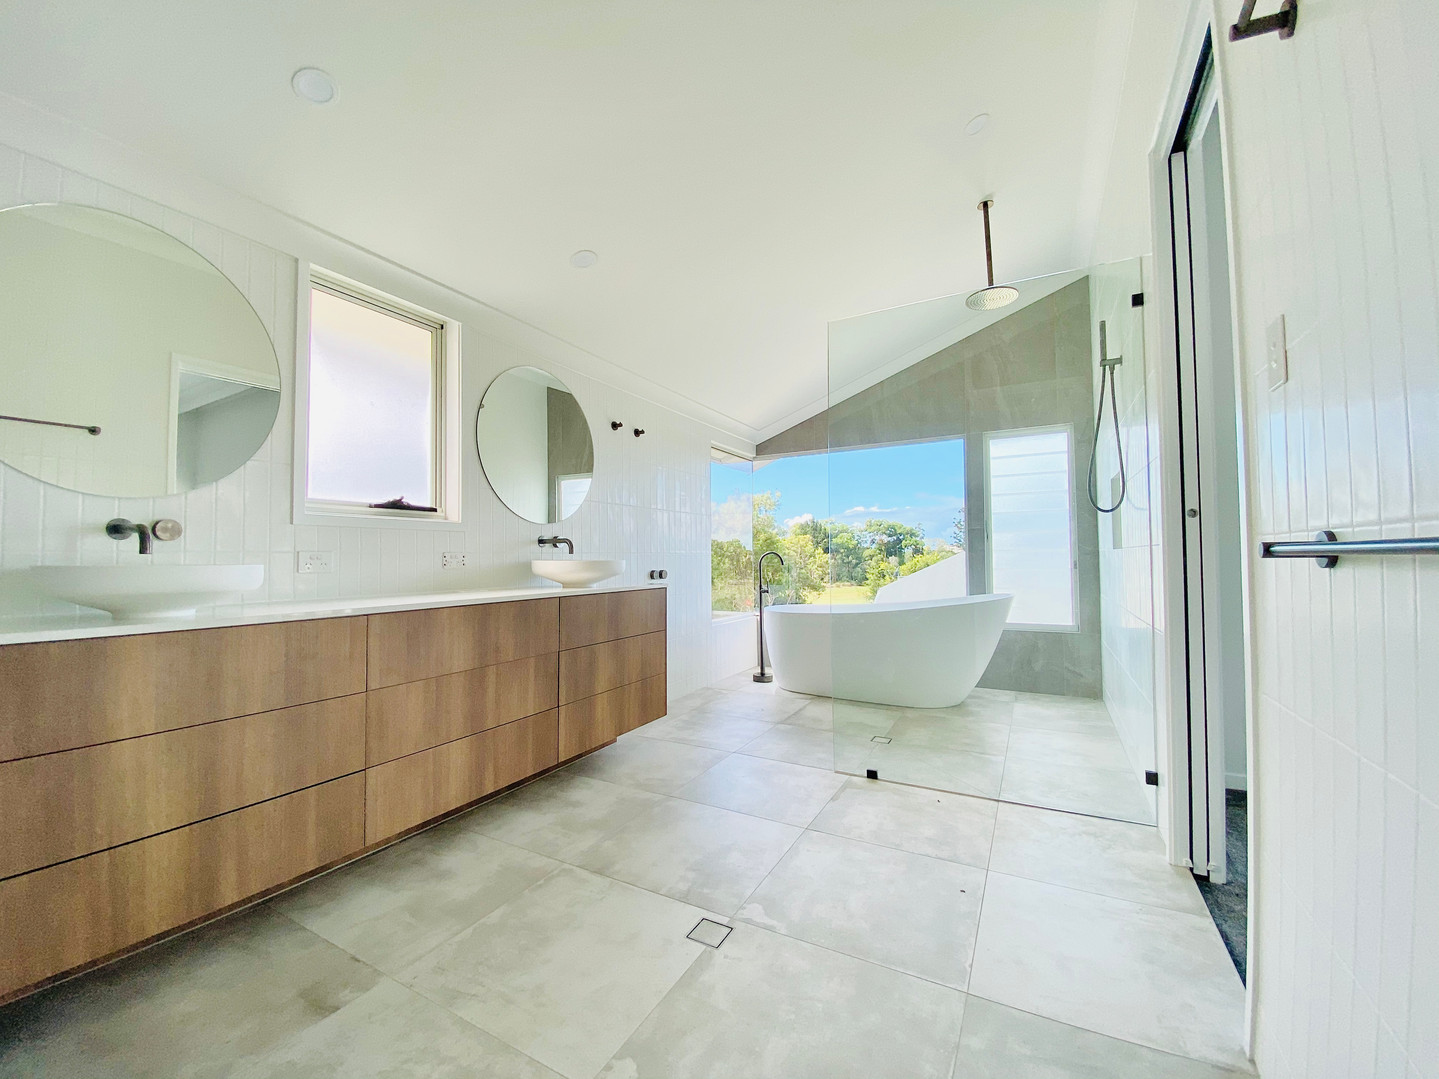 Clayfield Ensuite IMG_E9868.JPG